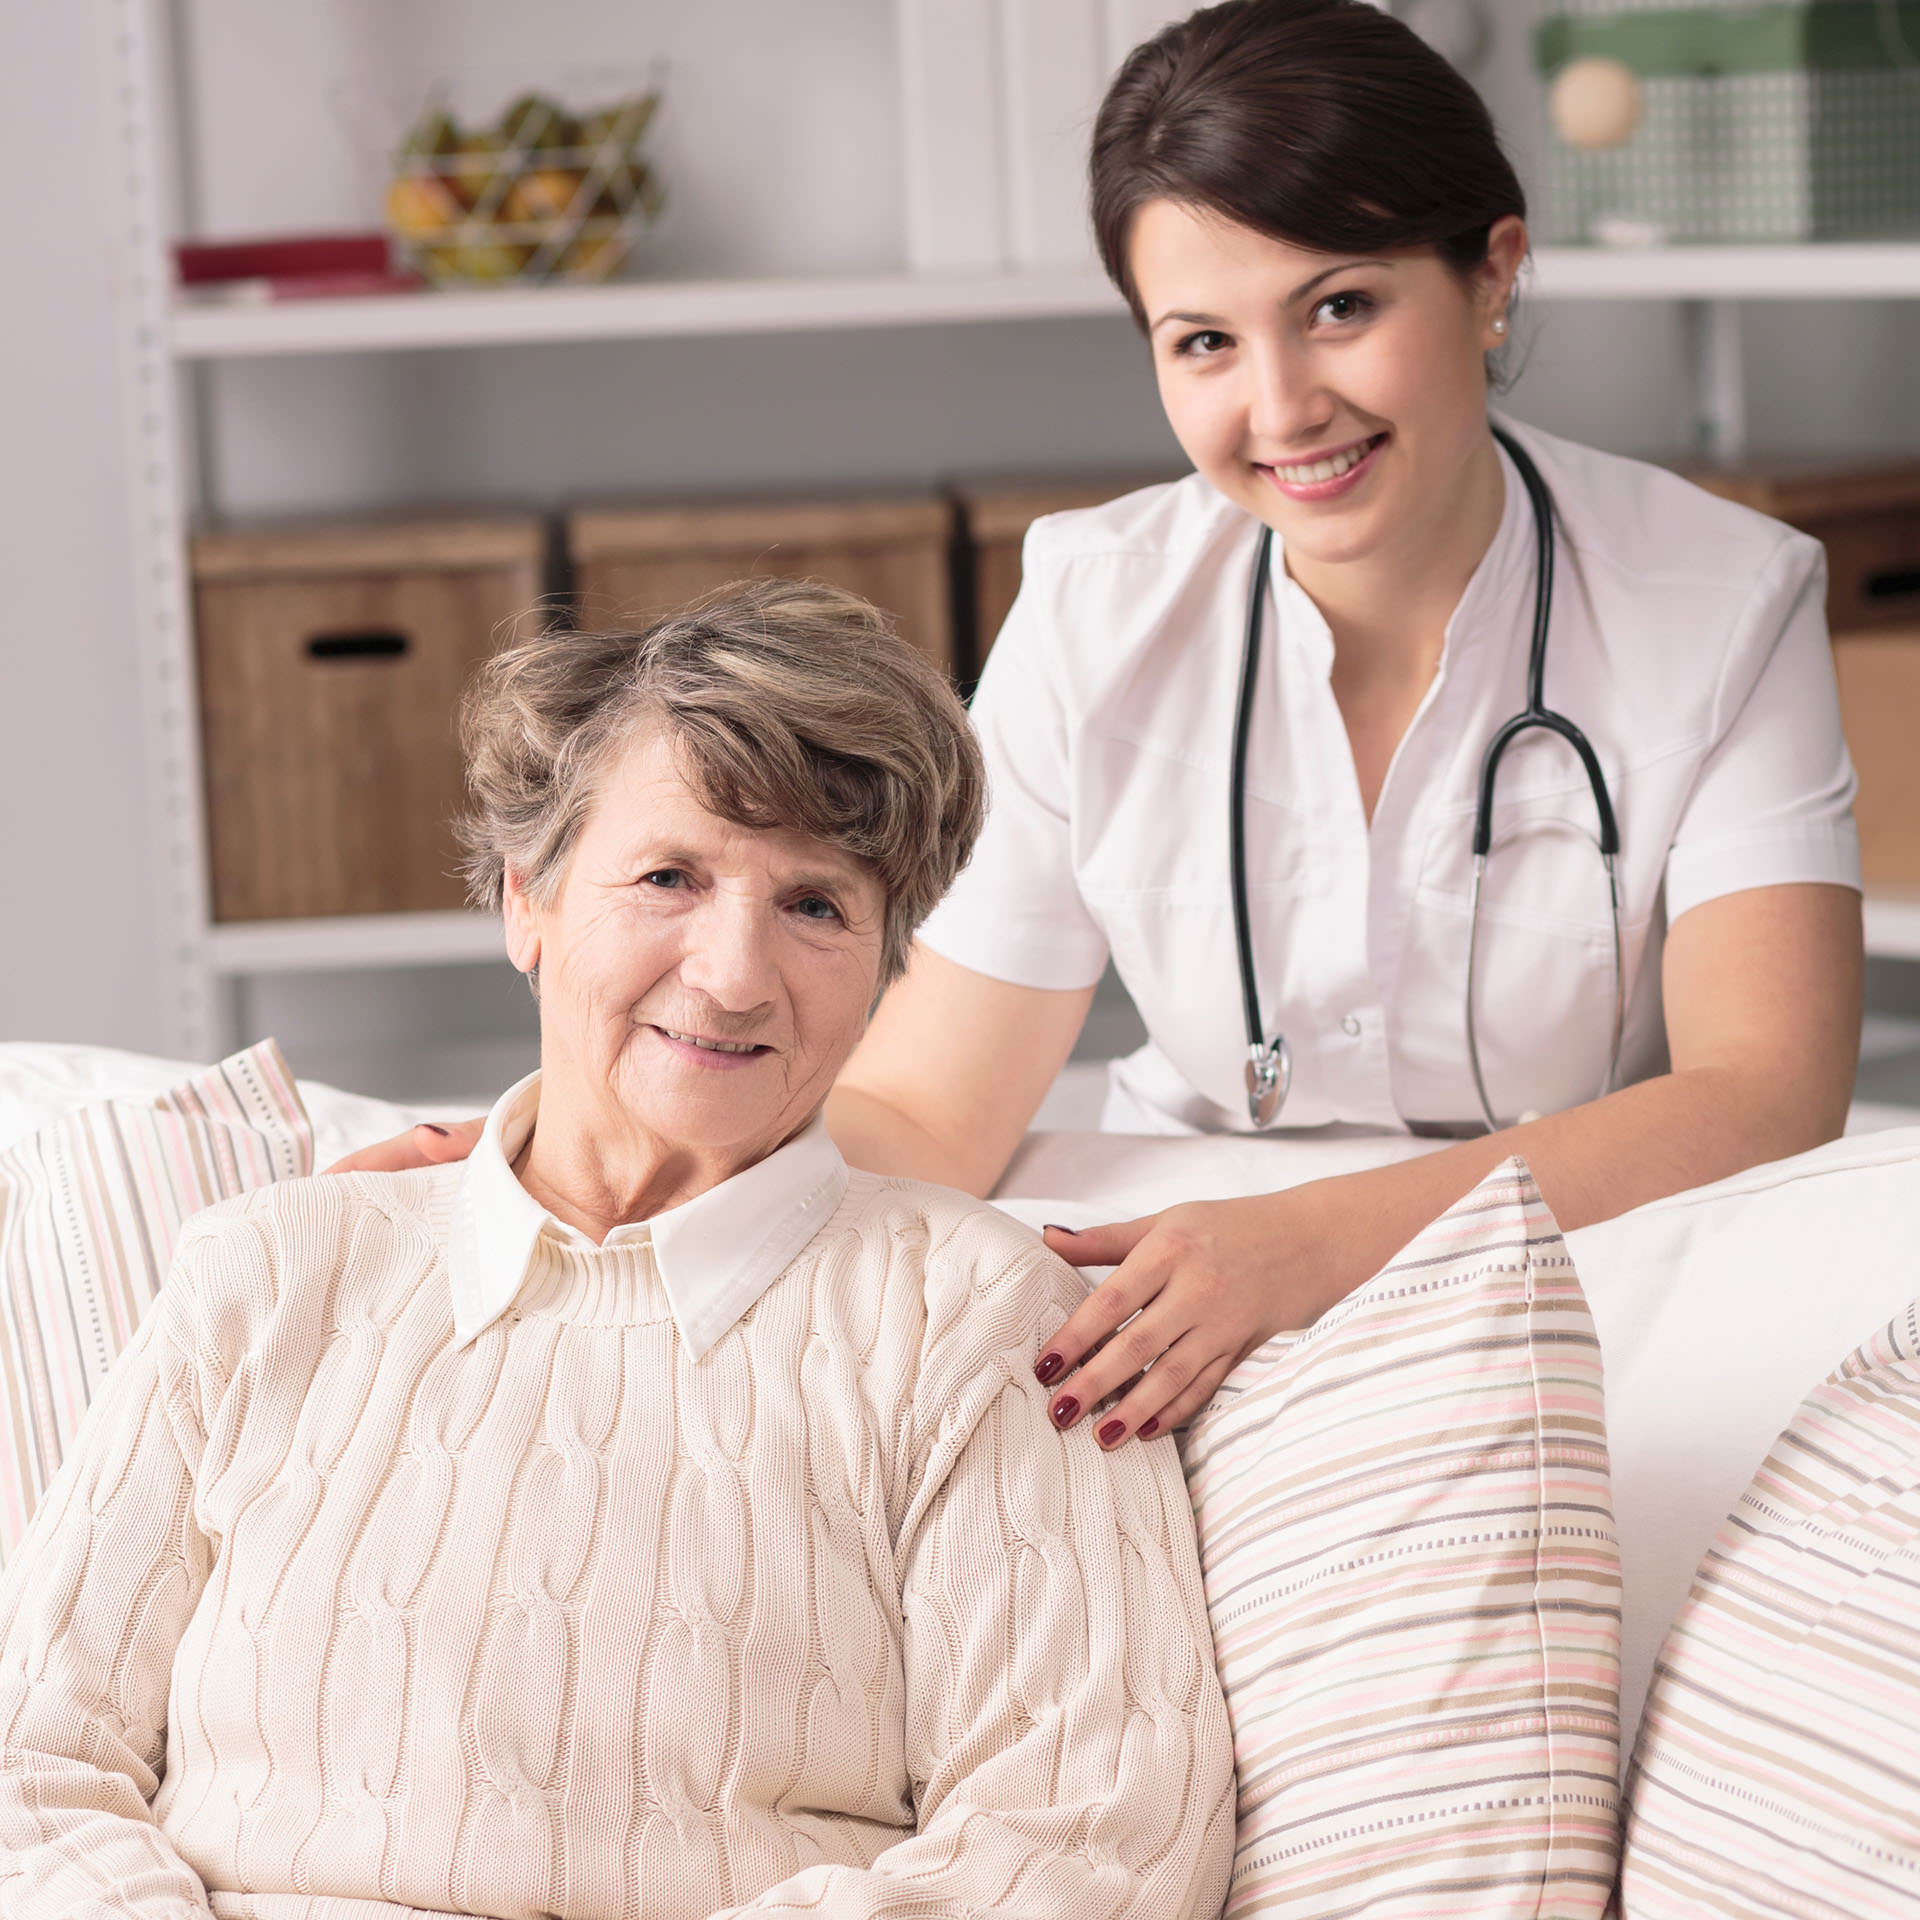 Senior patient and doctor during home visit